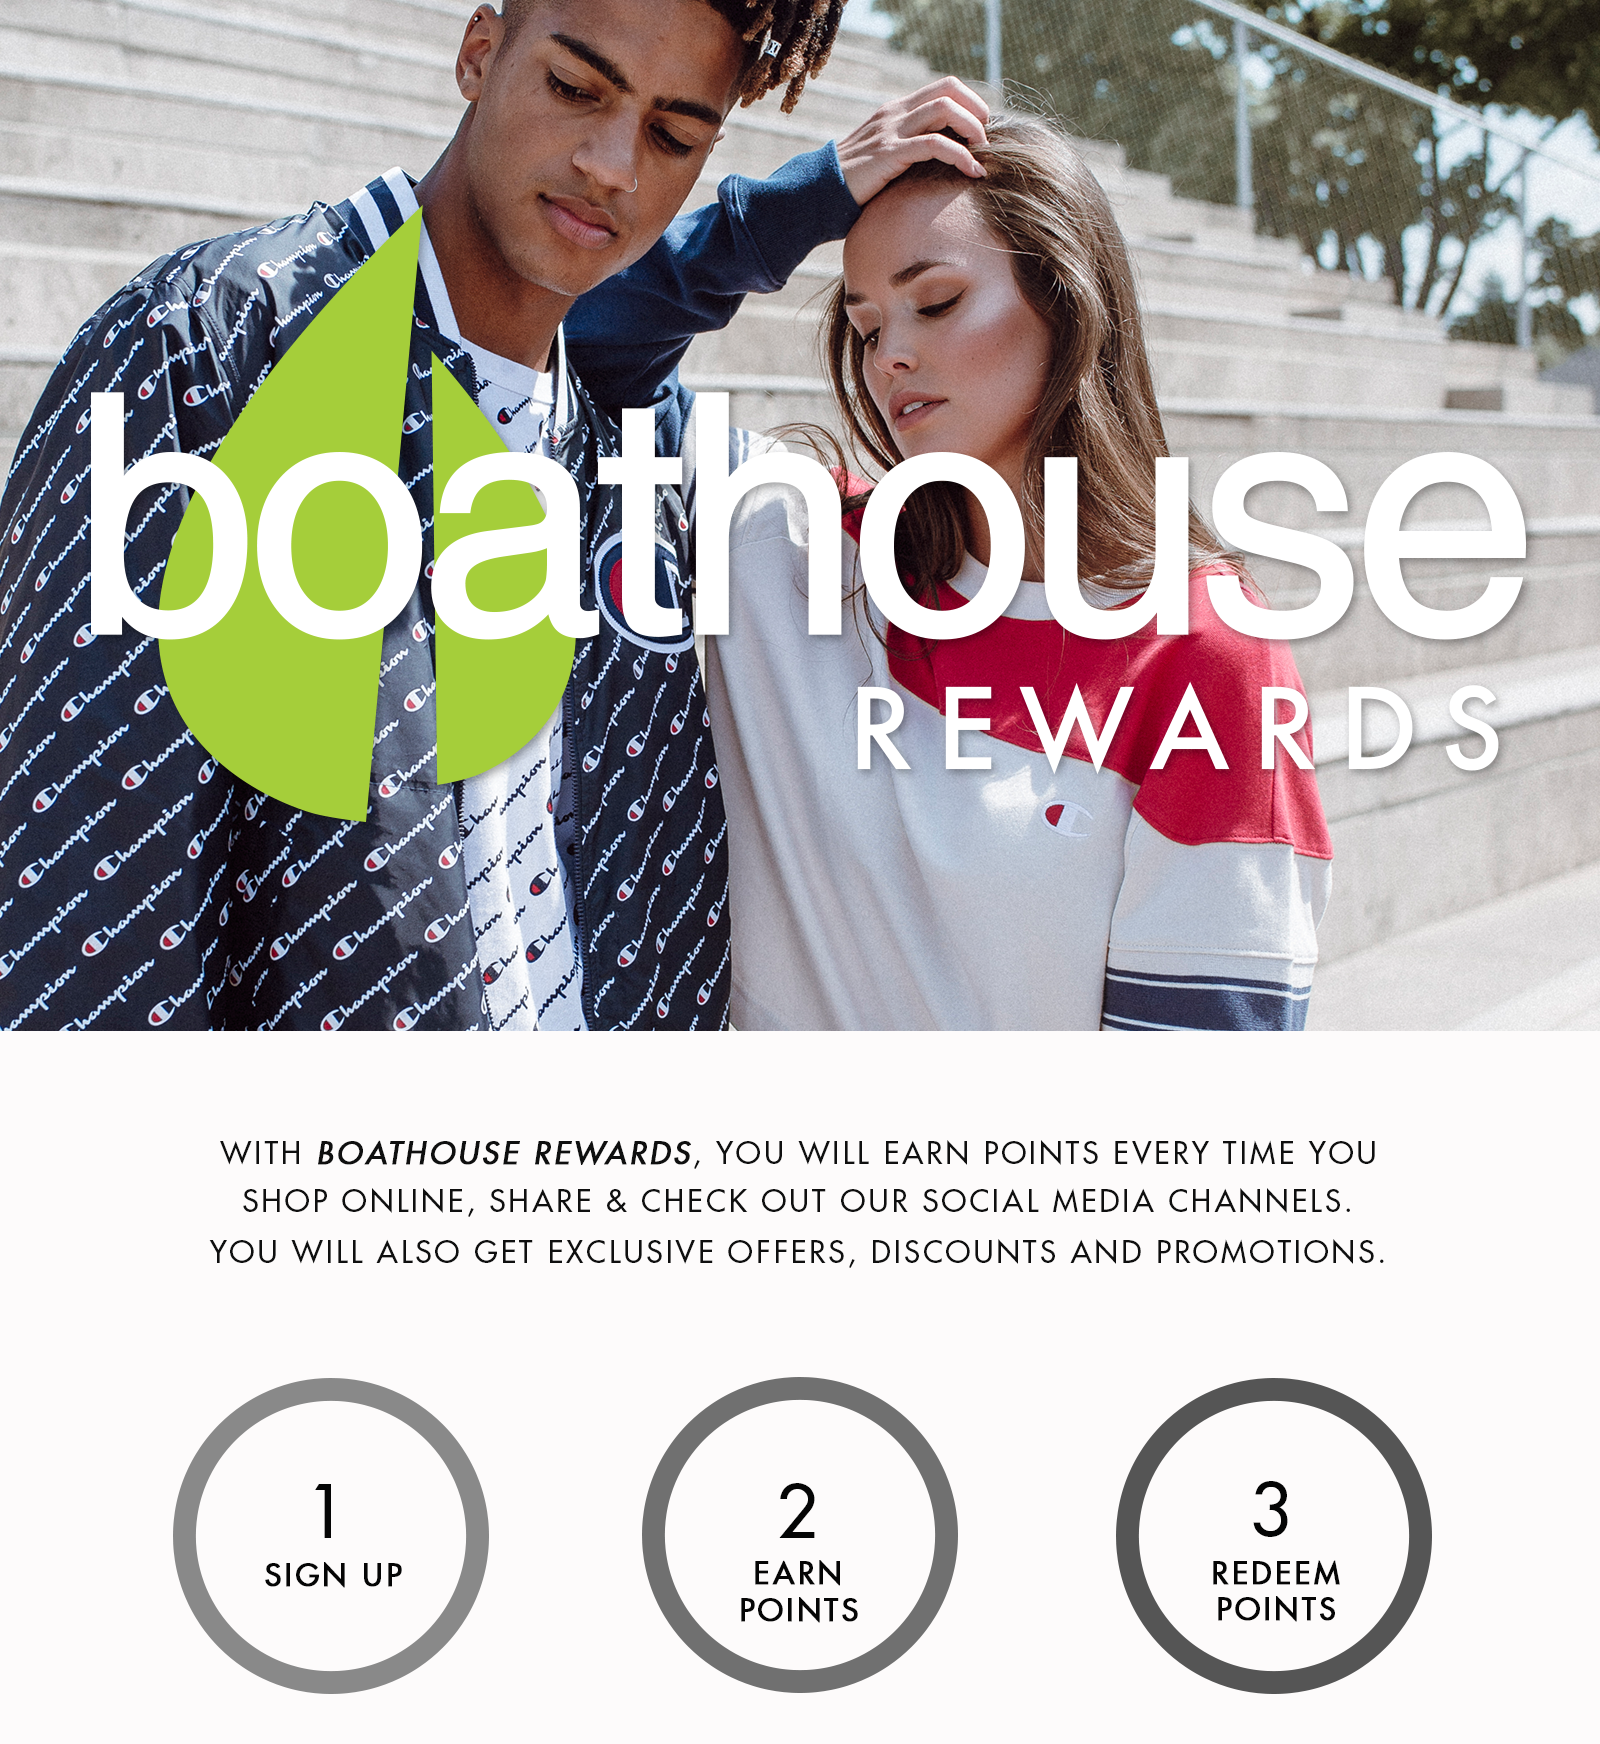 Boathouse rewards points